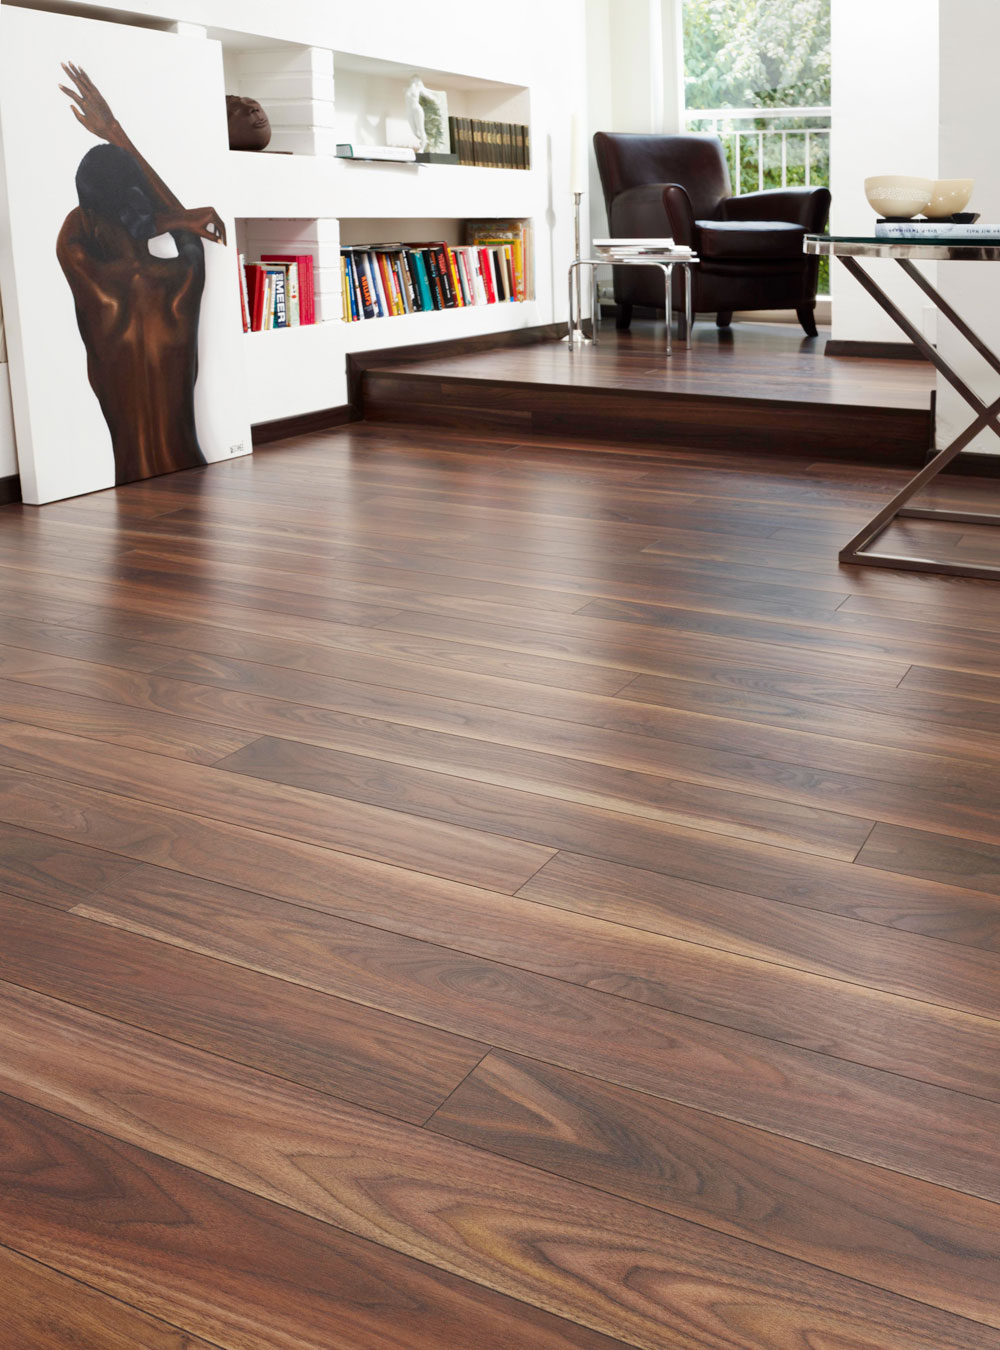 Rich Walnut Laminate Flooring Btw Baths Tiles Woodfloors